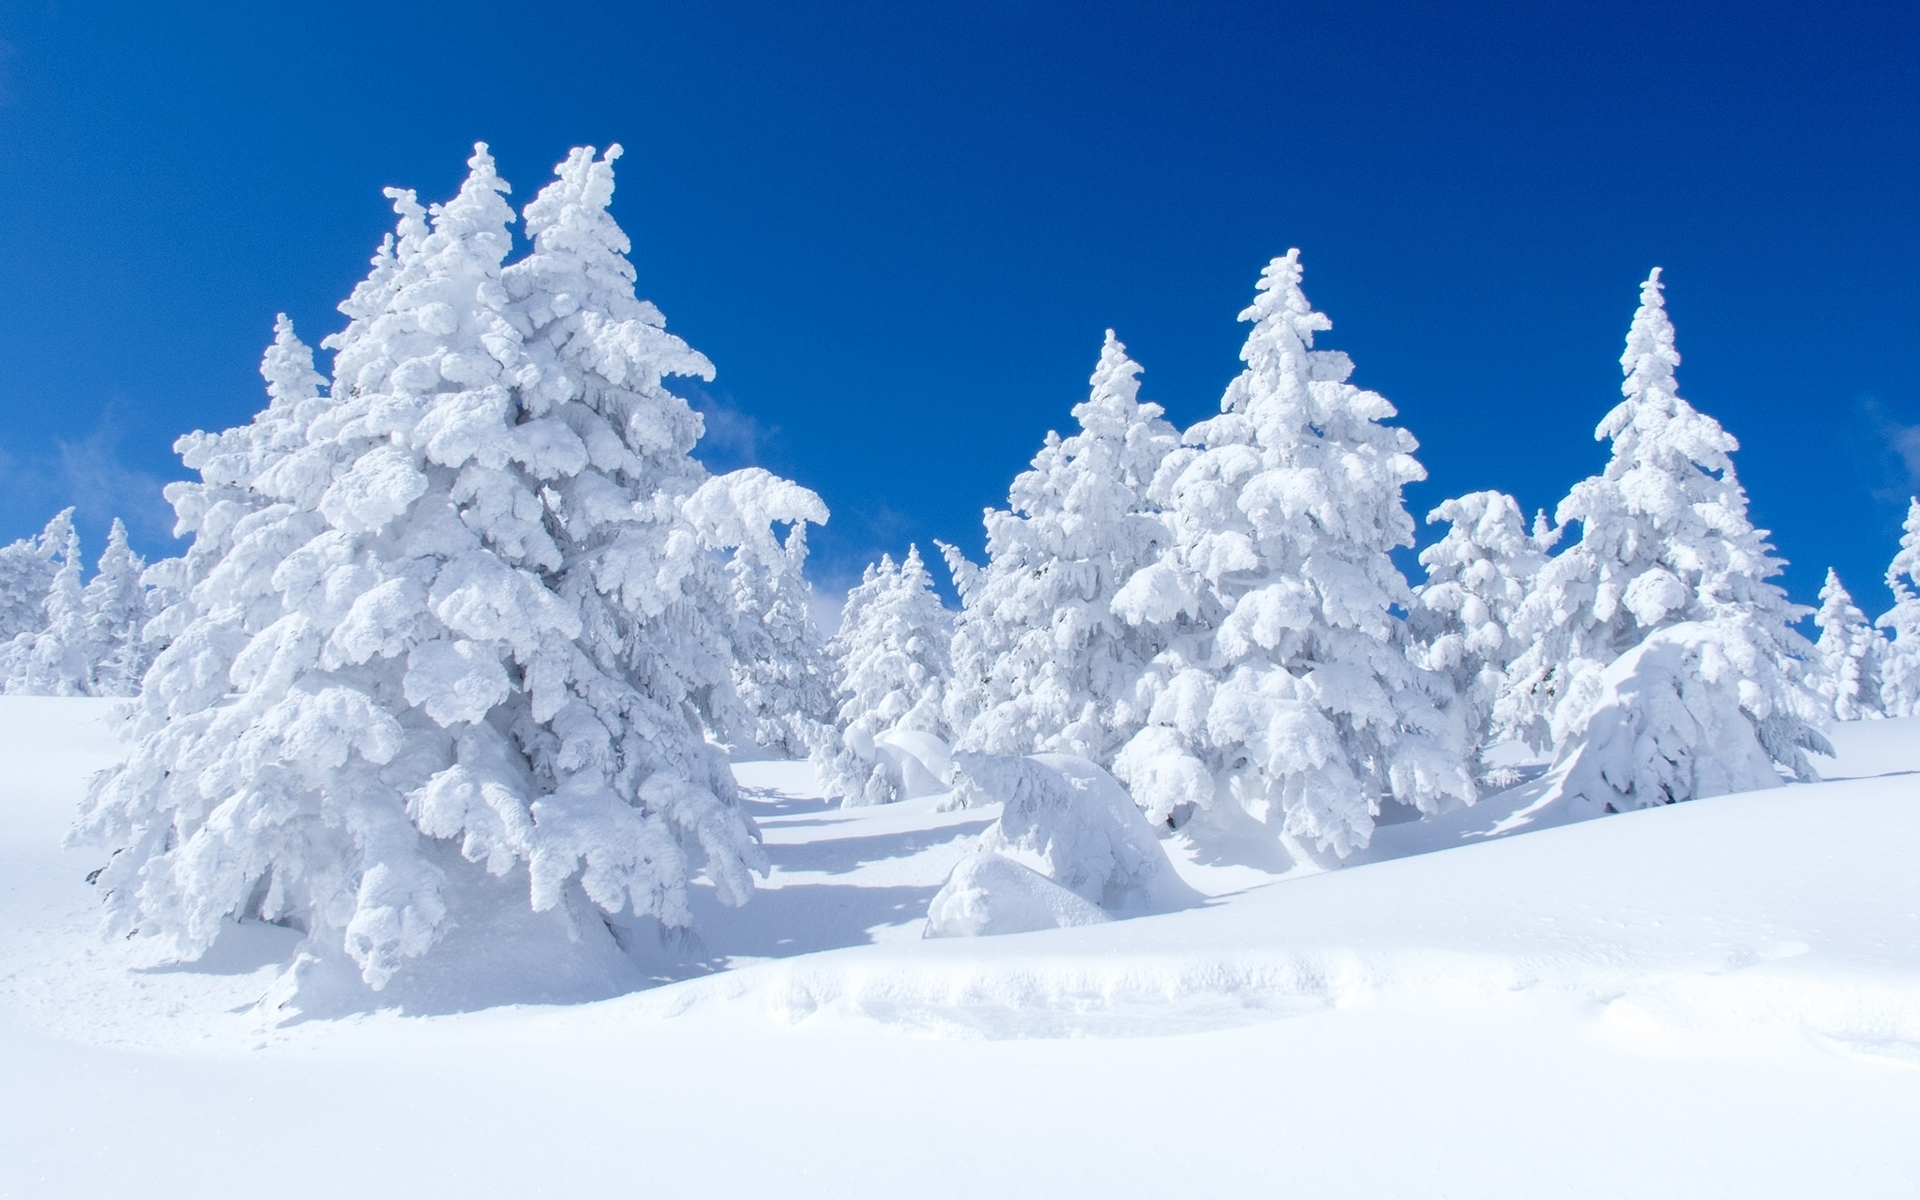 Snow Covered Pine Trees Computer Wallpapers Desktop 1920x1200